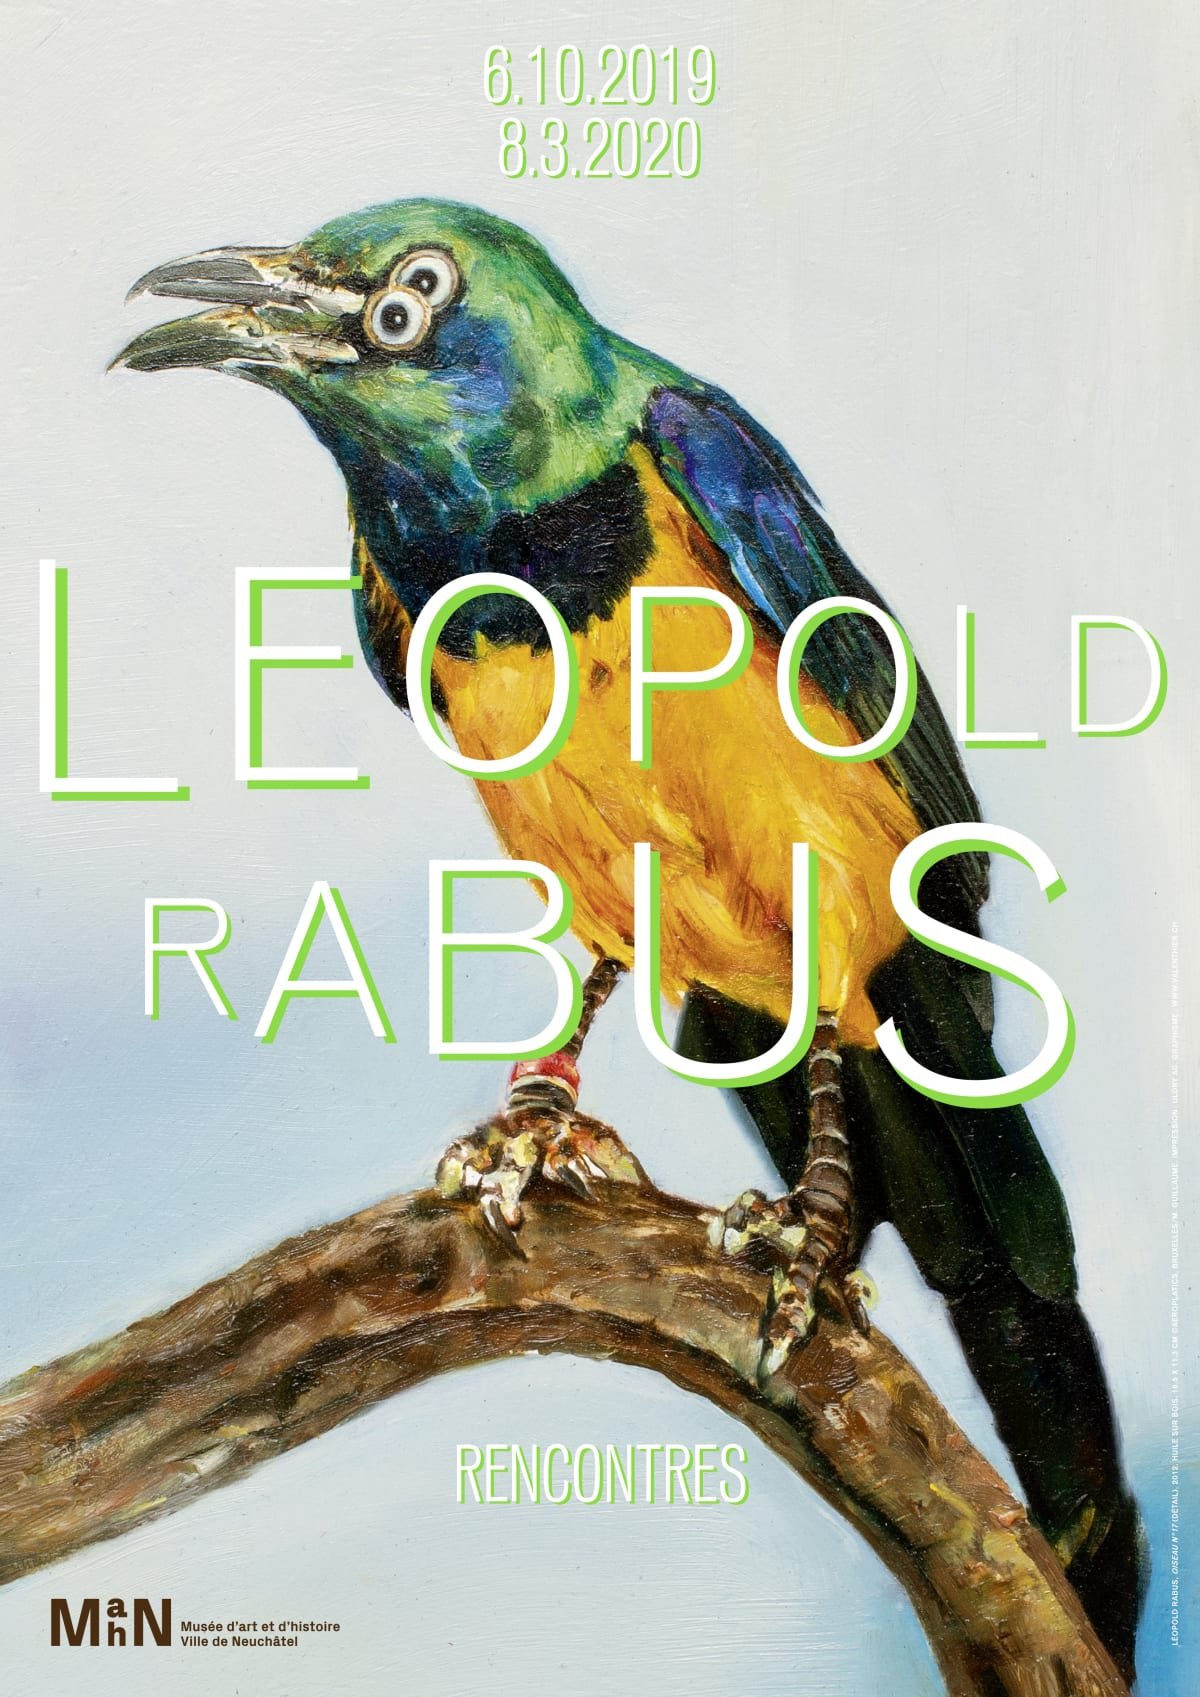 Rencontres - by Leopold Rabus